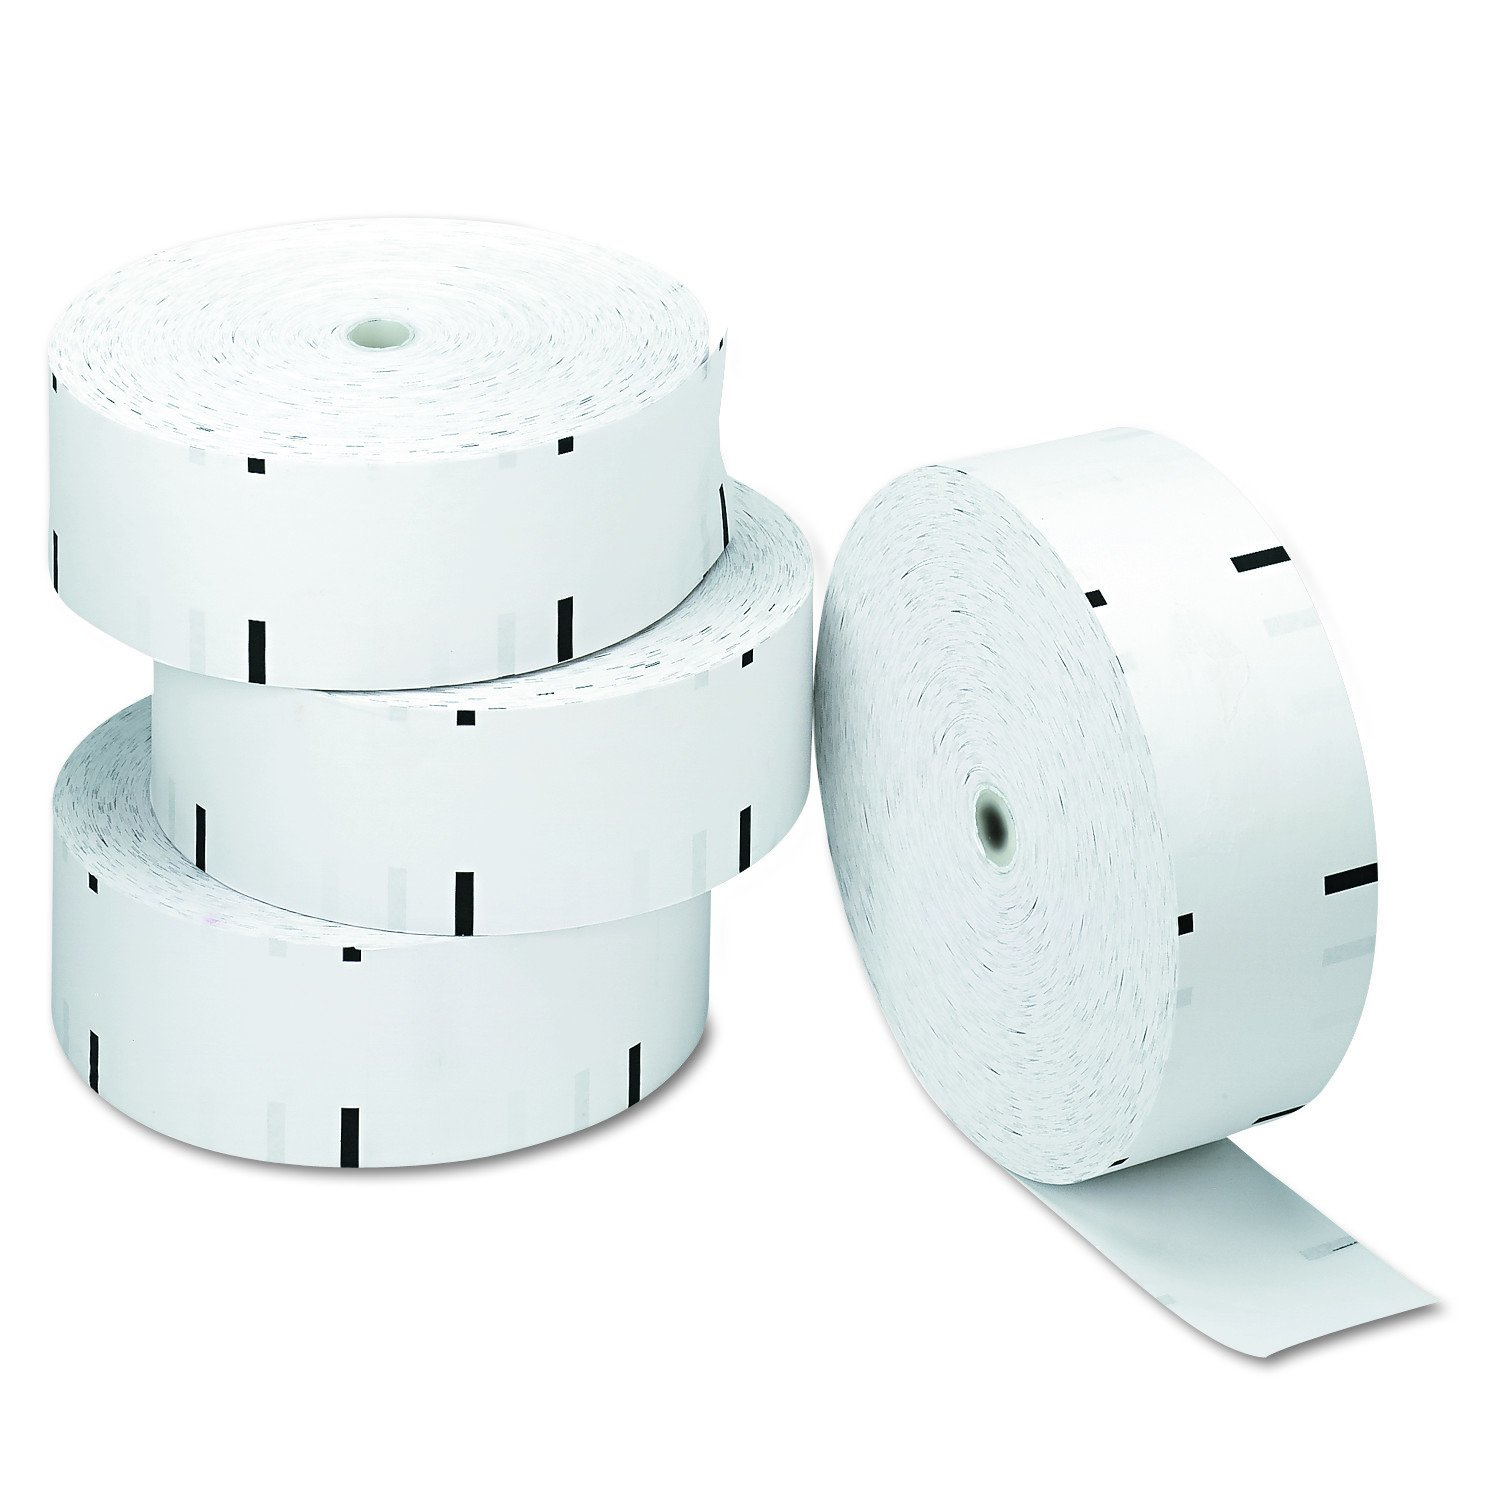 PM Company 06507 Paper Rolls for NCR Atms, 4 Rolls/Carton, 3-1/8'' x 1,960 feet